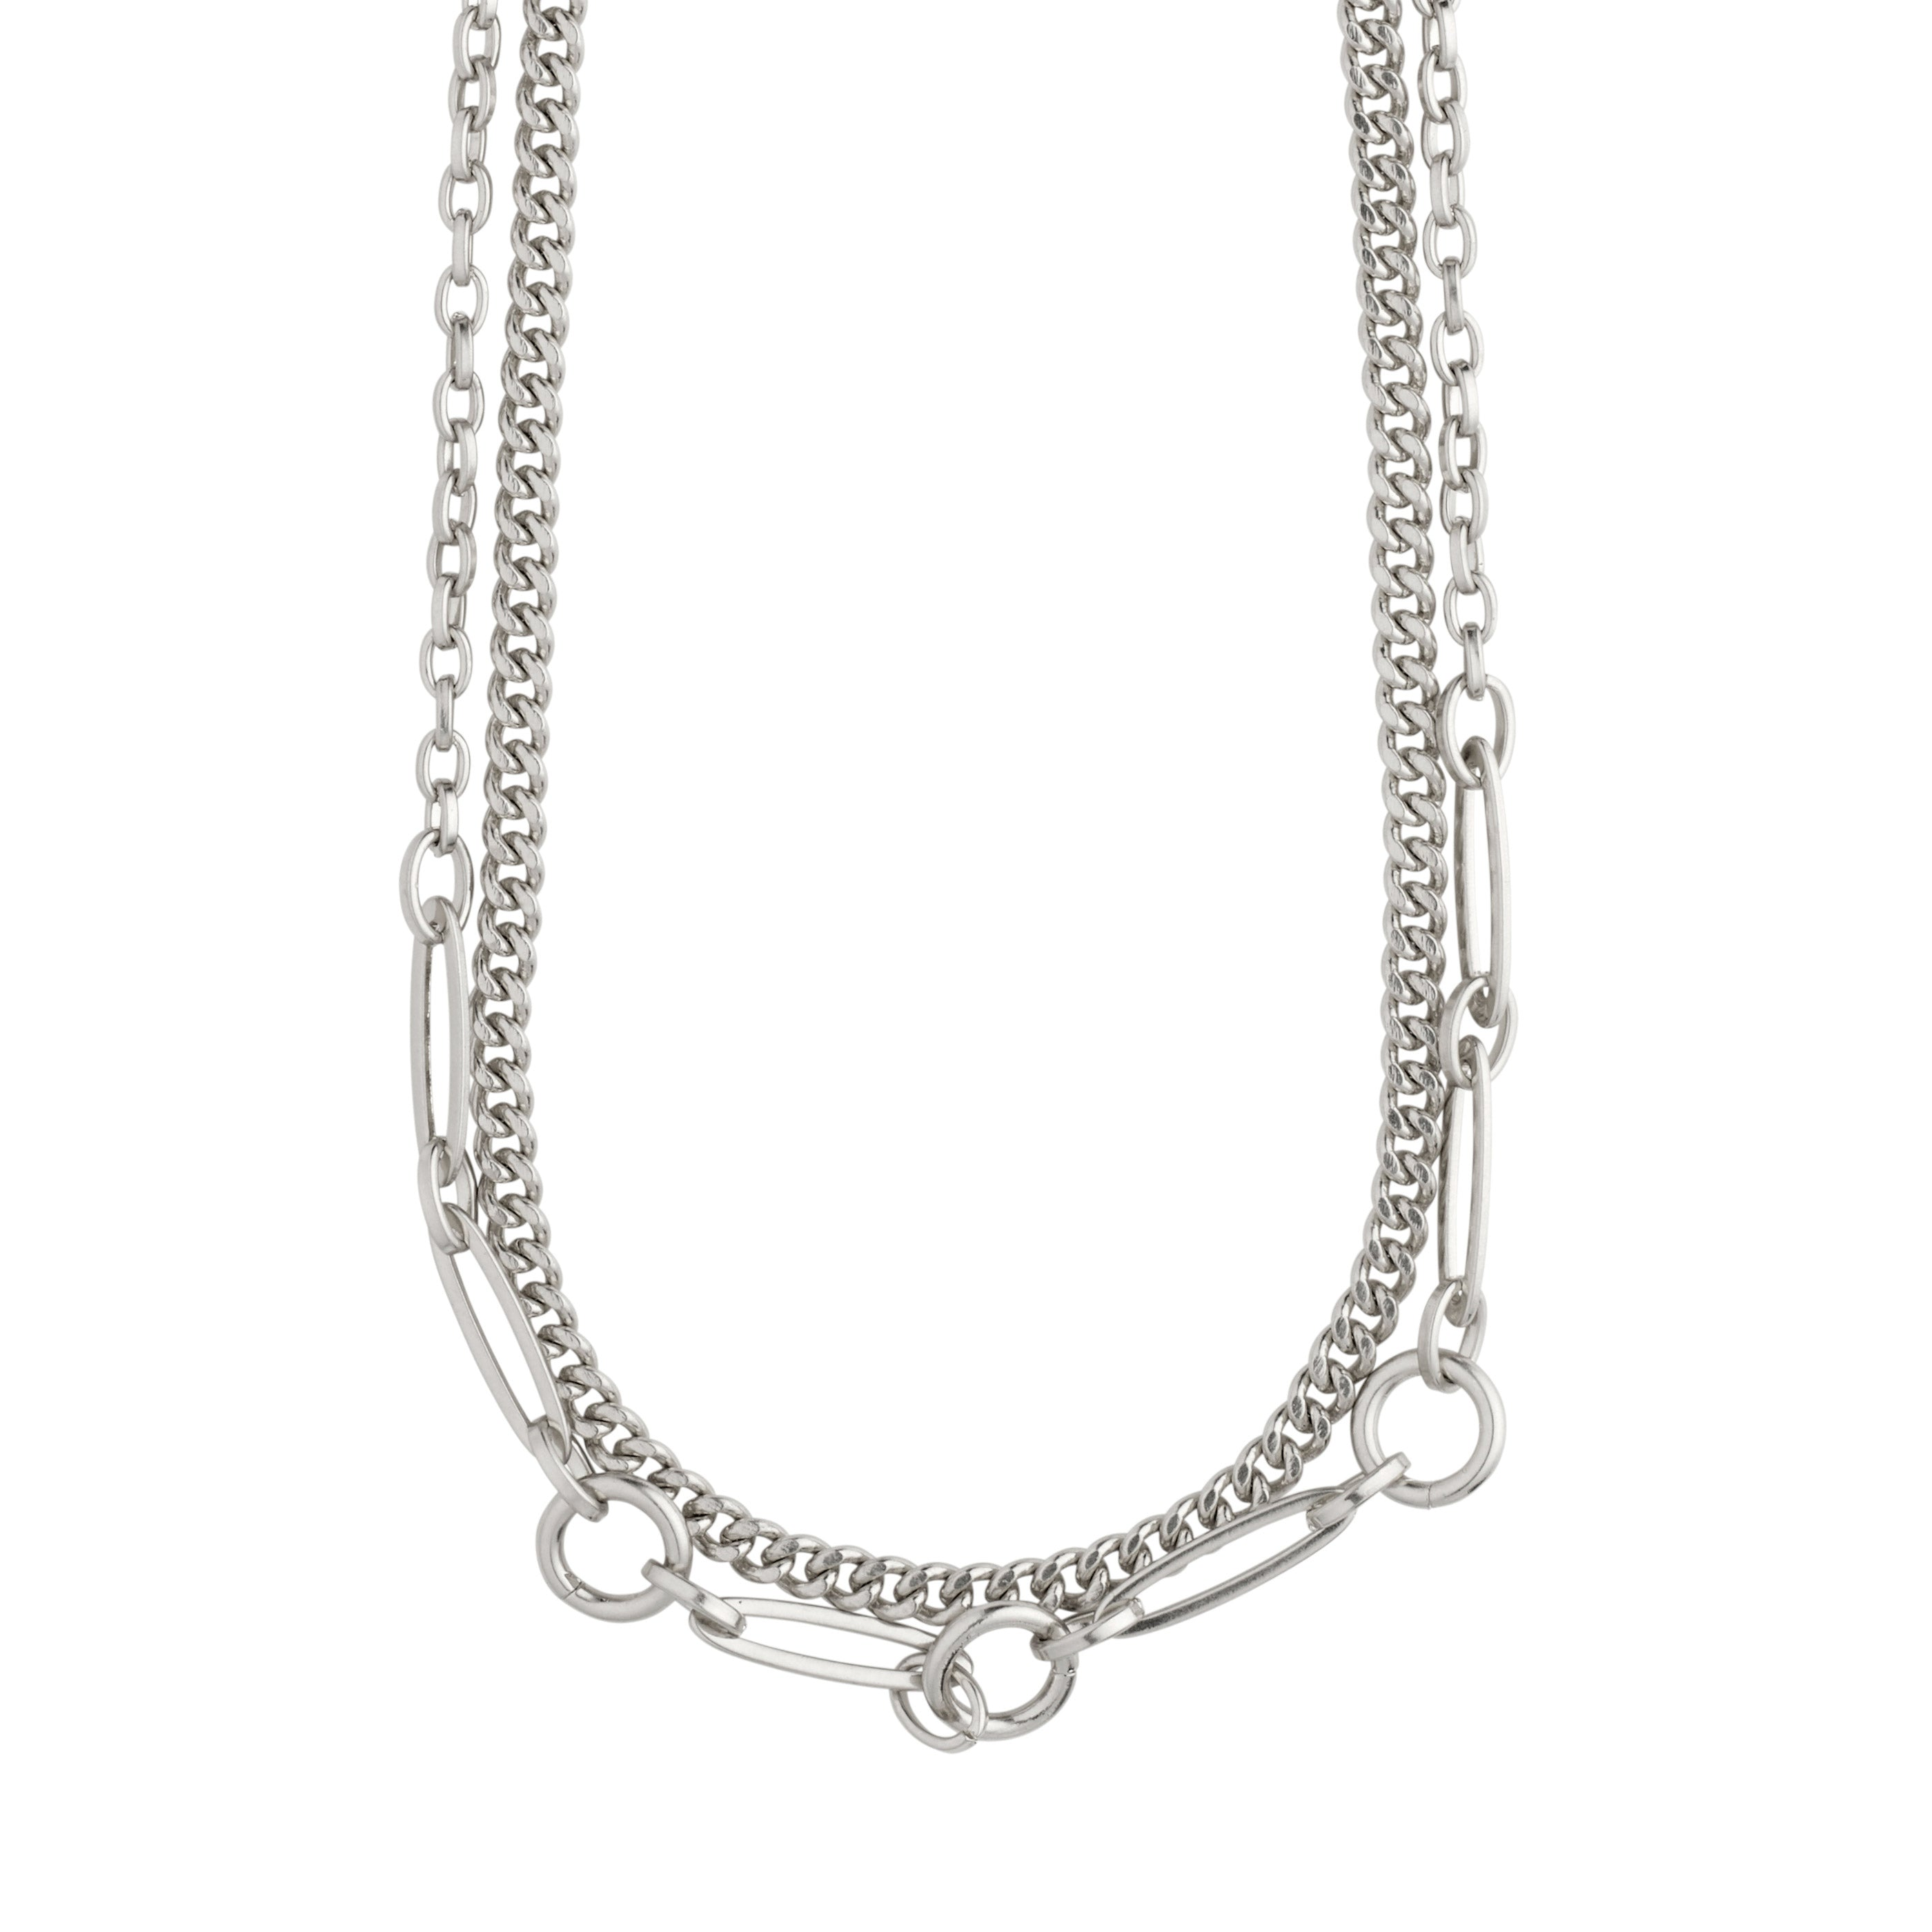 Necklace : Sensitivity : Silver Plated